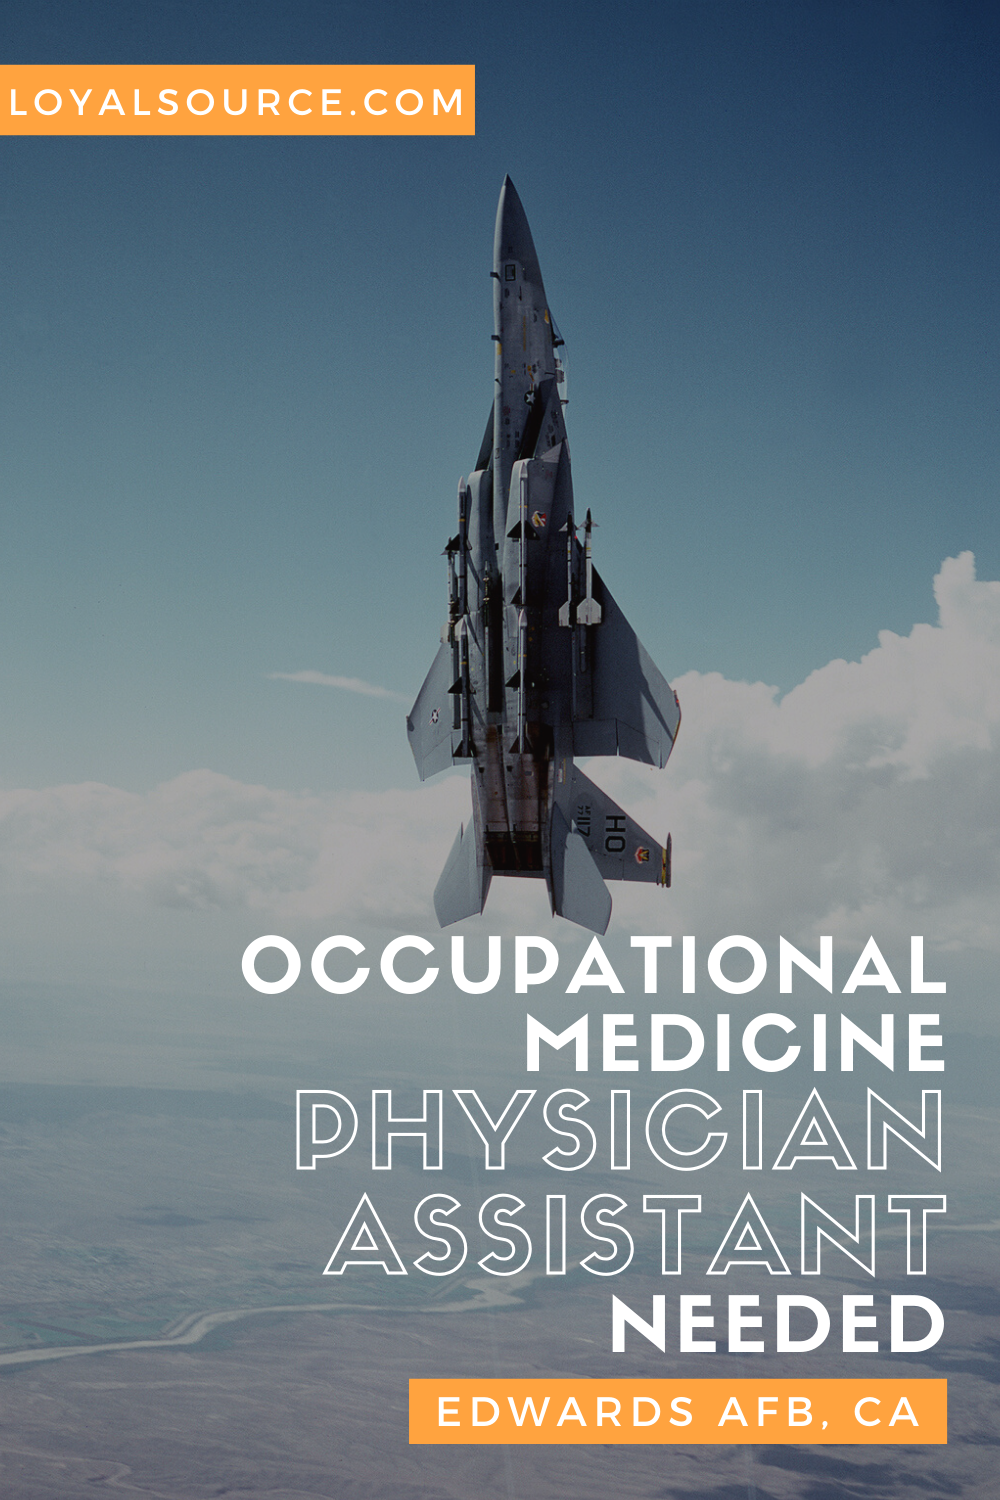 Physician Assistant Occupational Medicine Edwards AFB